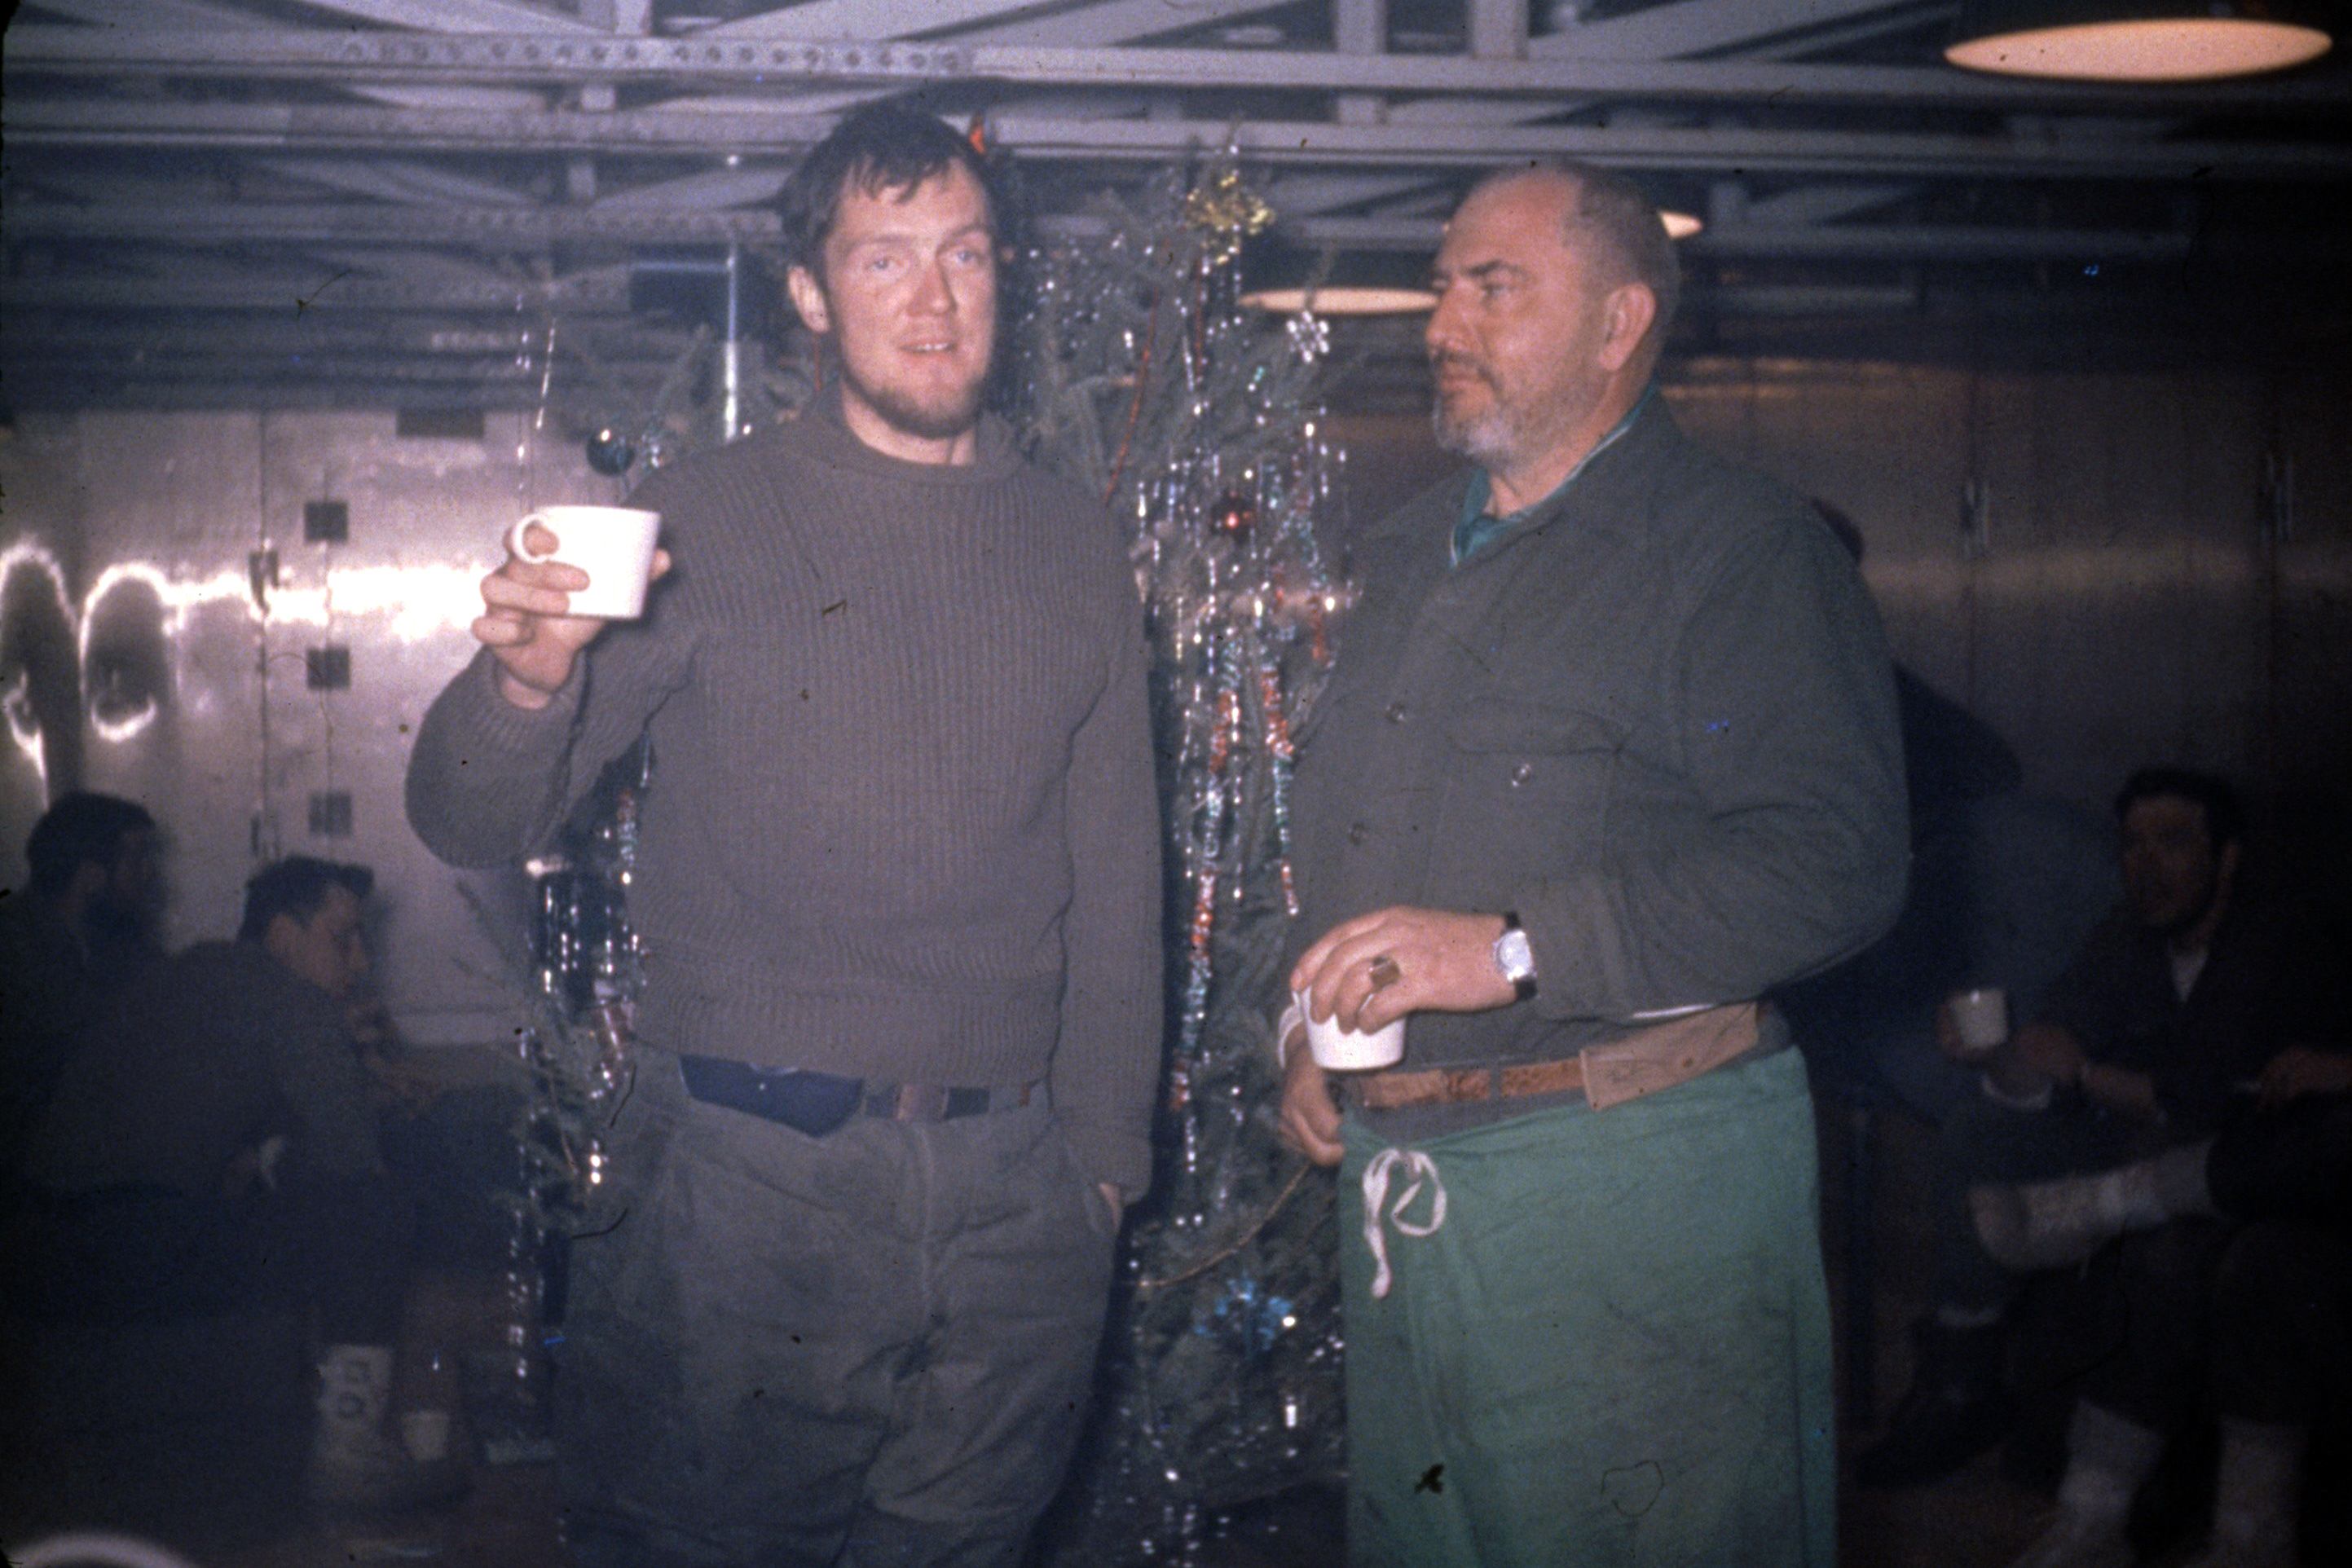 Two men share a drink in front of a Christmas tree.